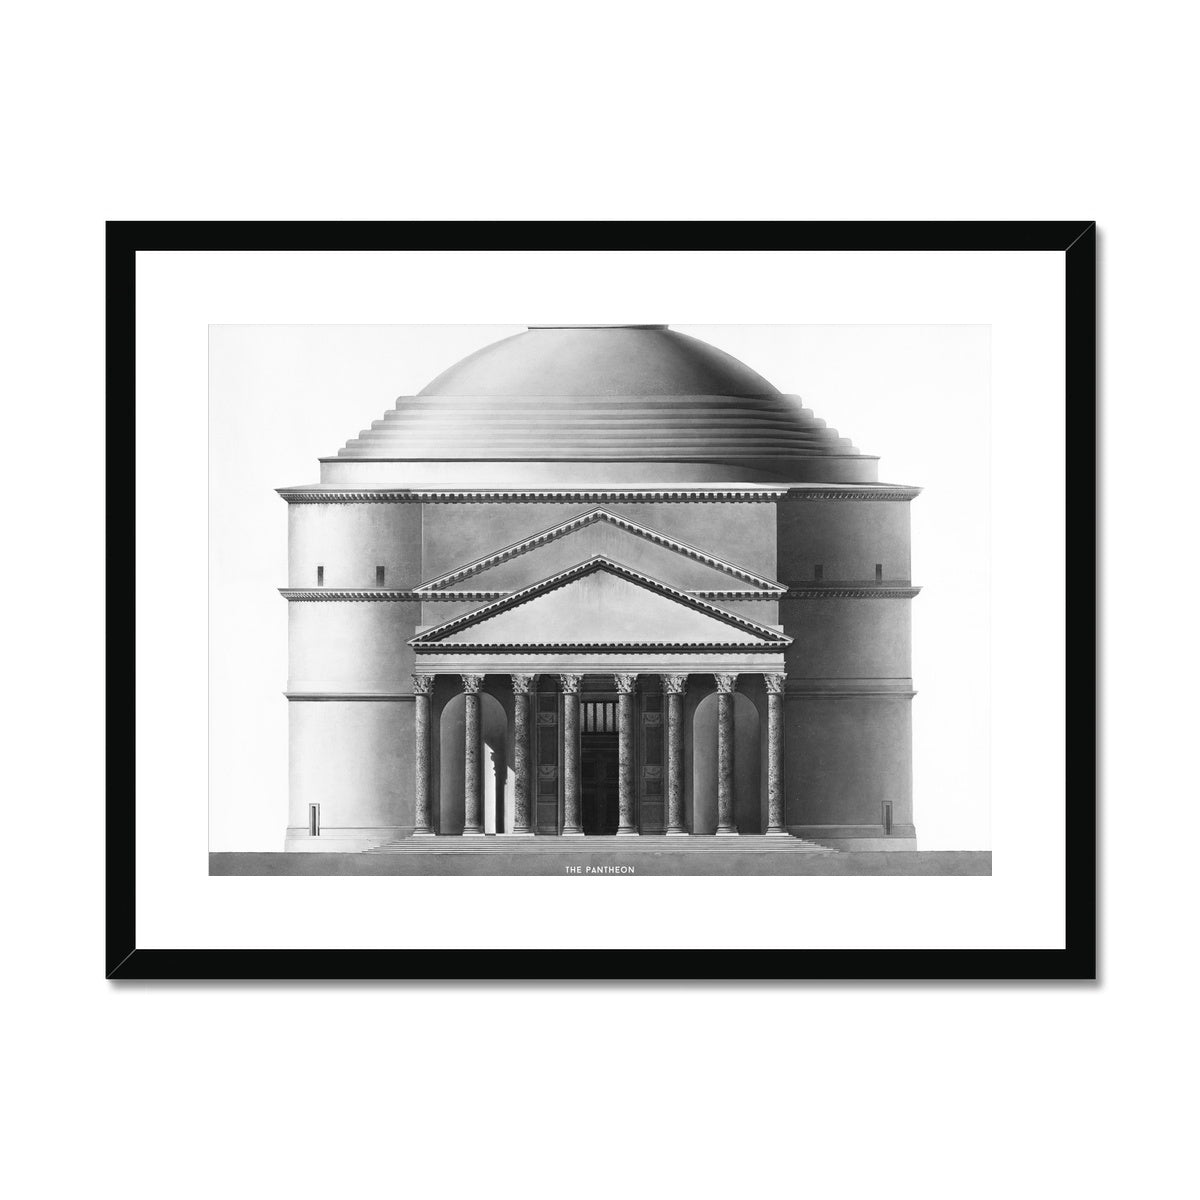 The Pantheon - Alternative Elevation -  Framed & Mounted Print